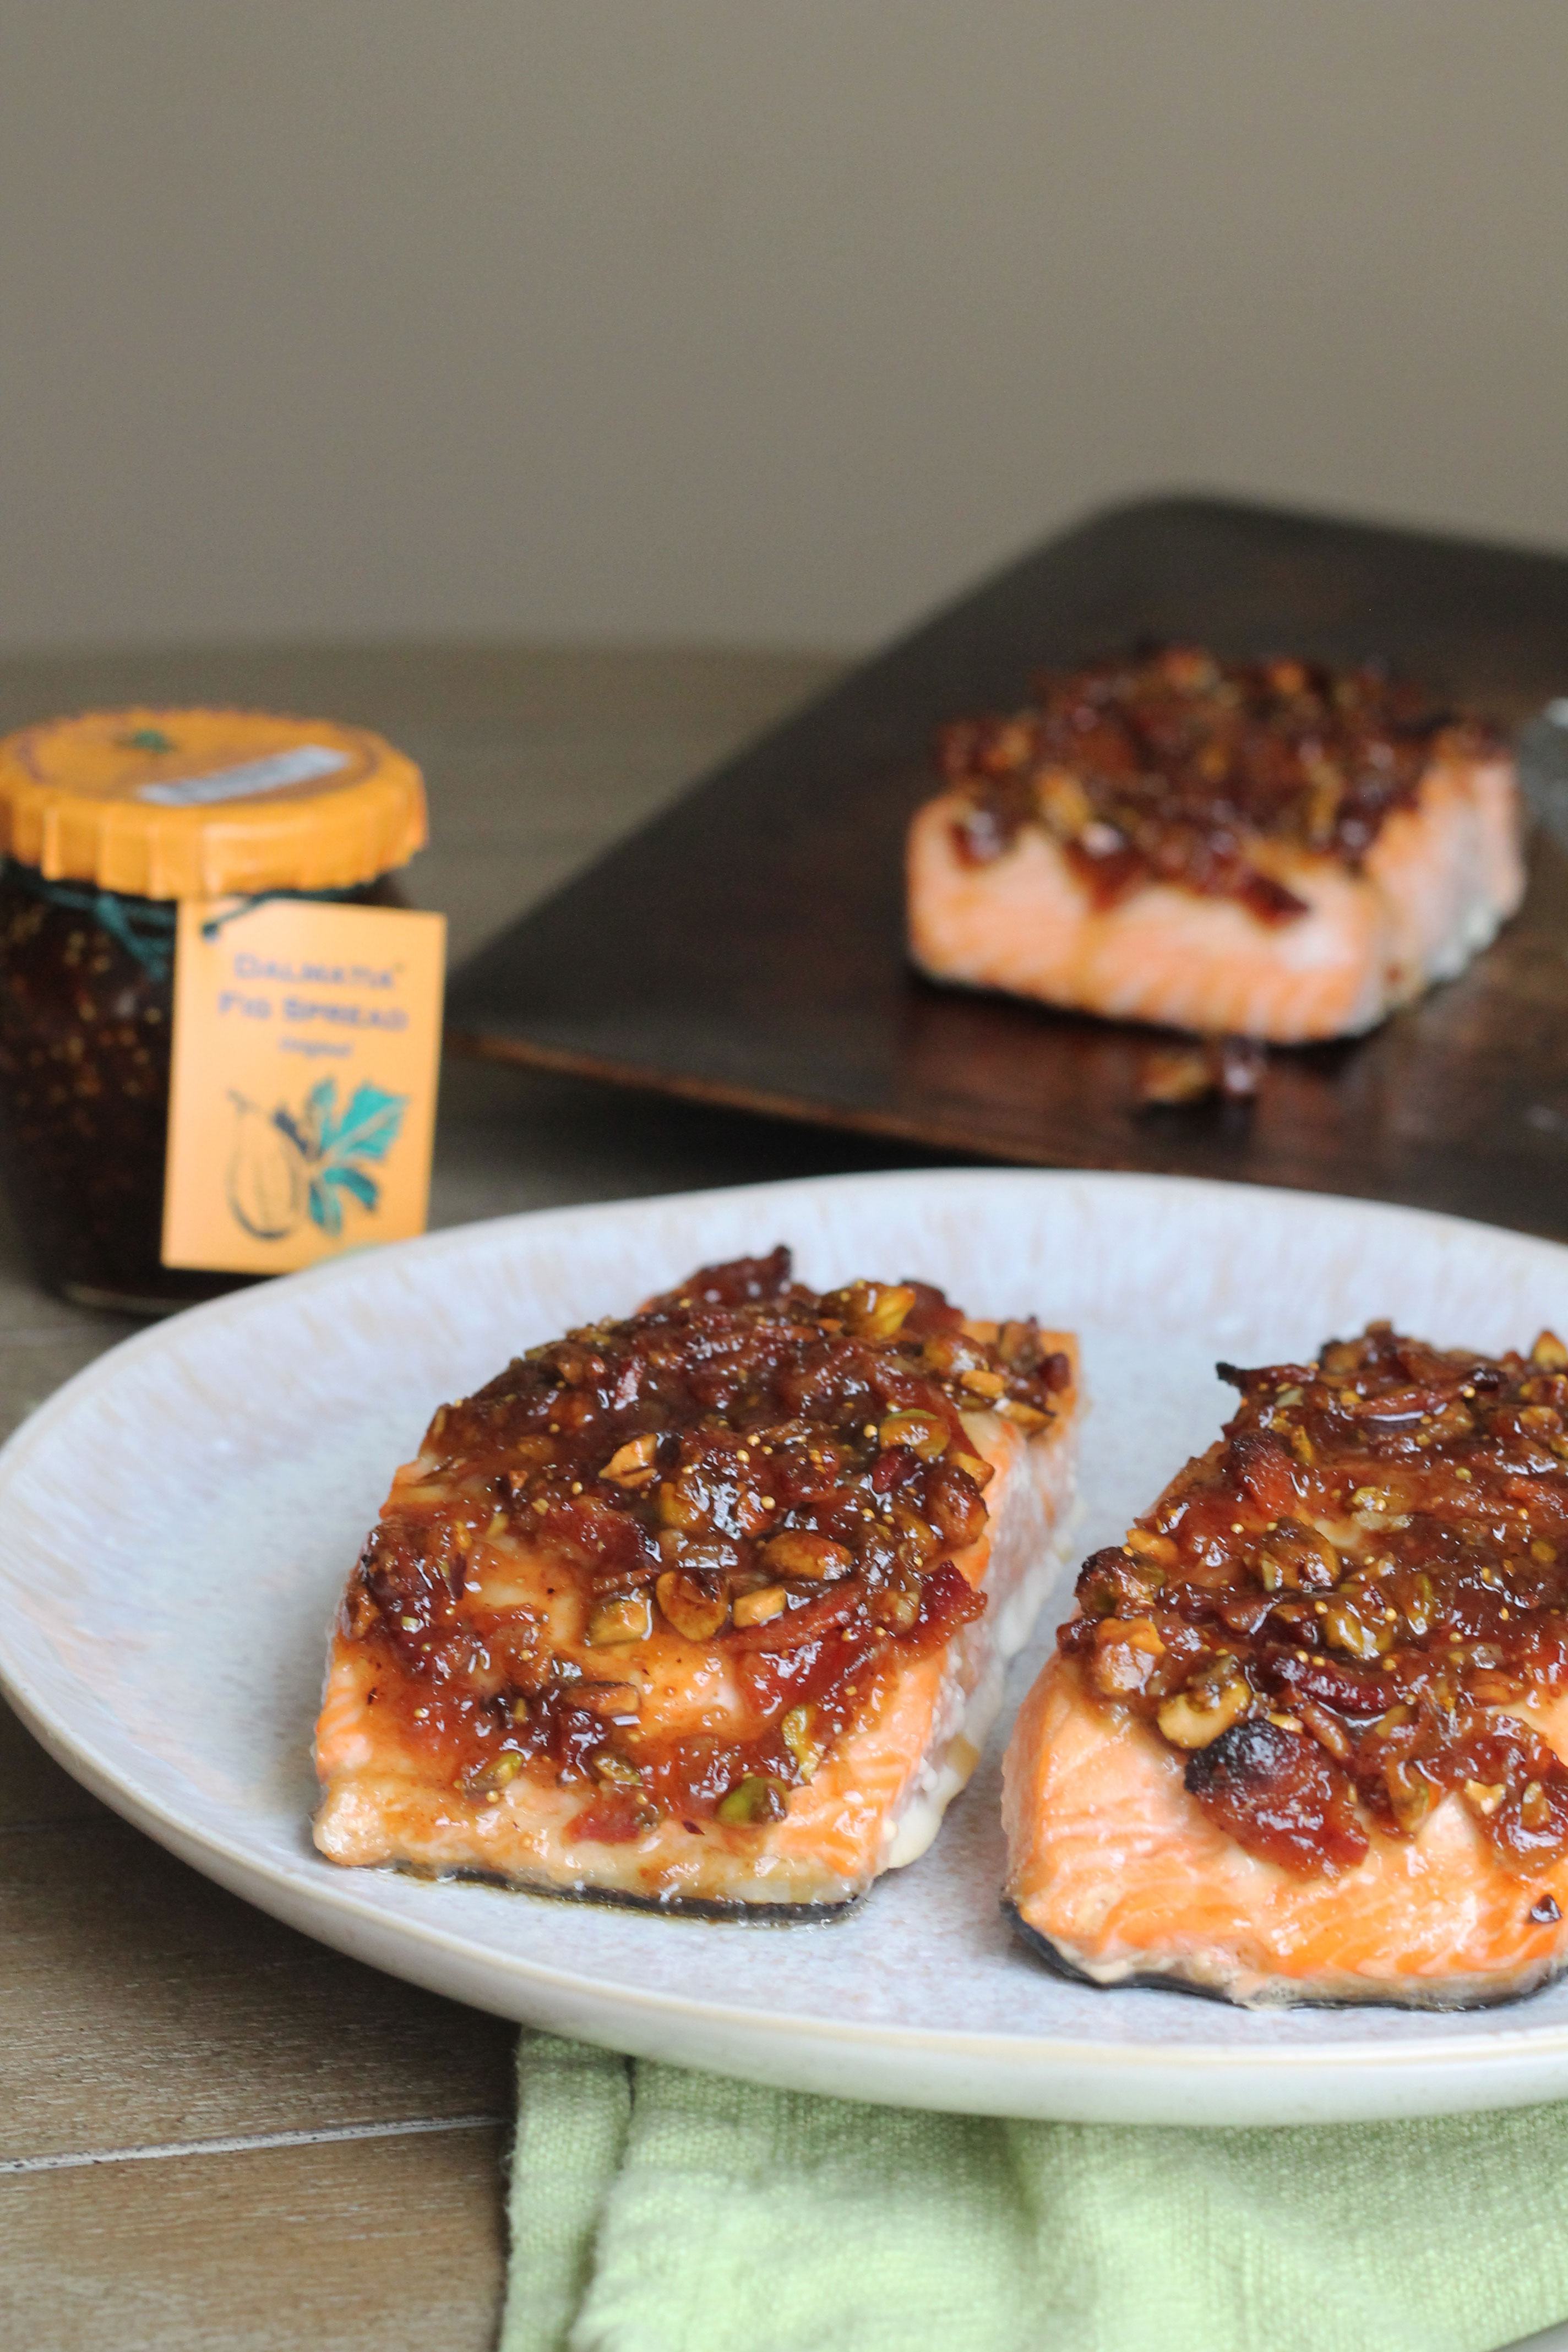 Salmon topped with fig jam, pistachios, and bacon